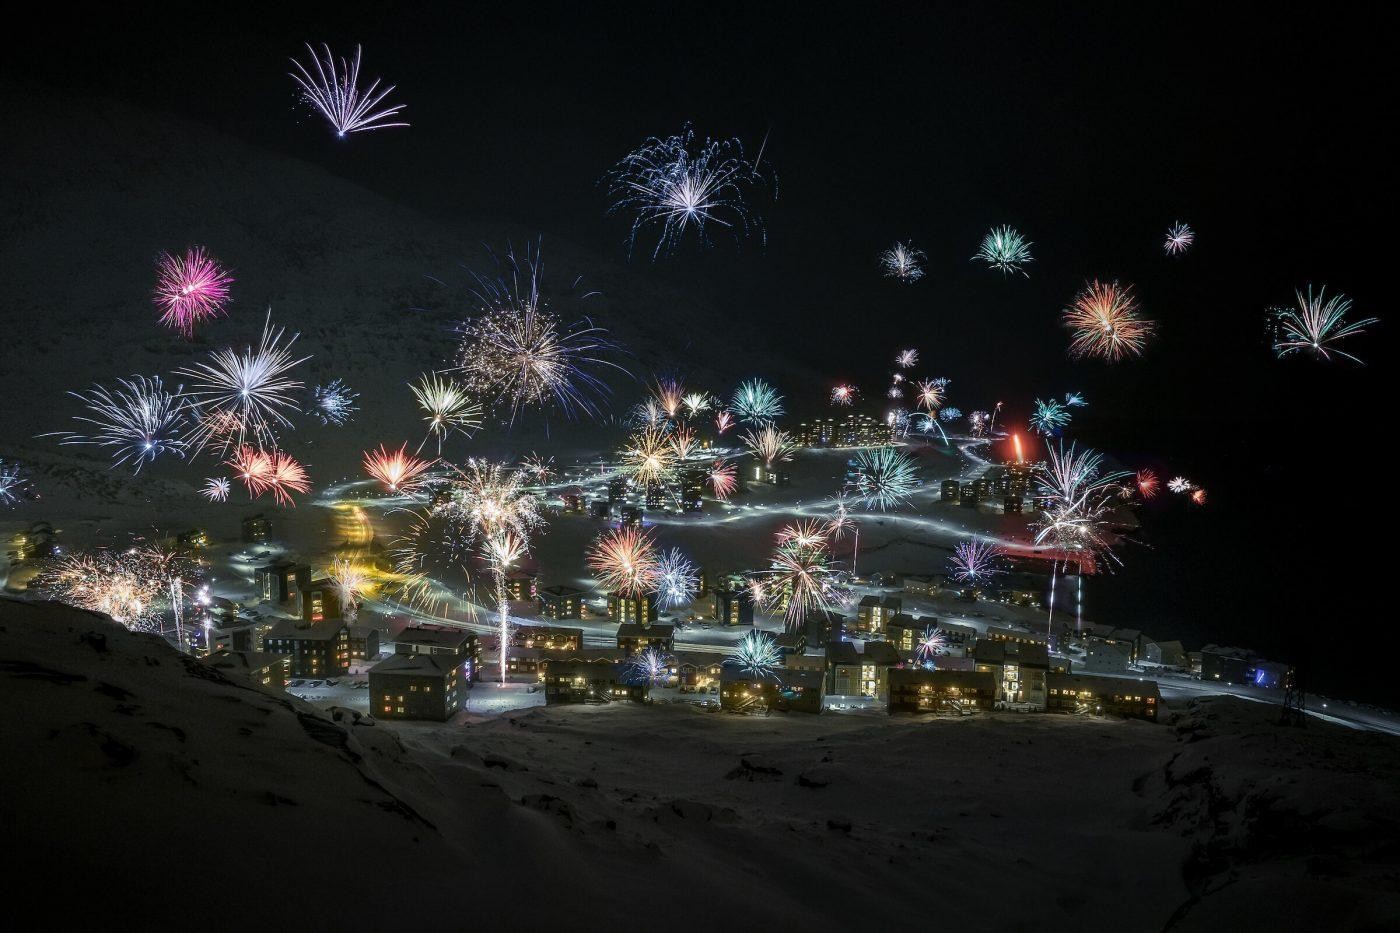 New Year's Eve lights up over the Nuuk suburb Qinngorput in Greenland. Photo by Mads Pihl